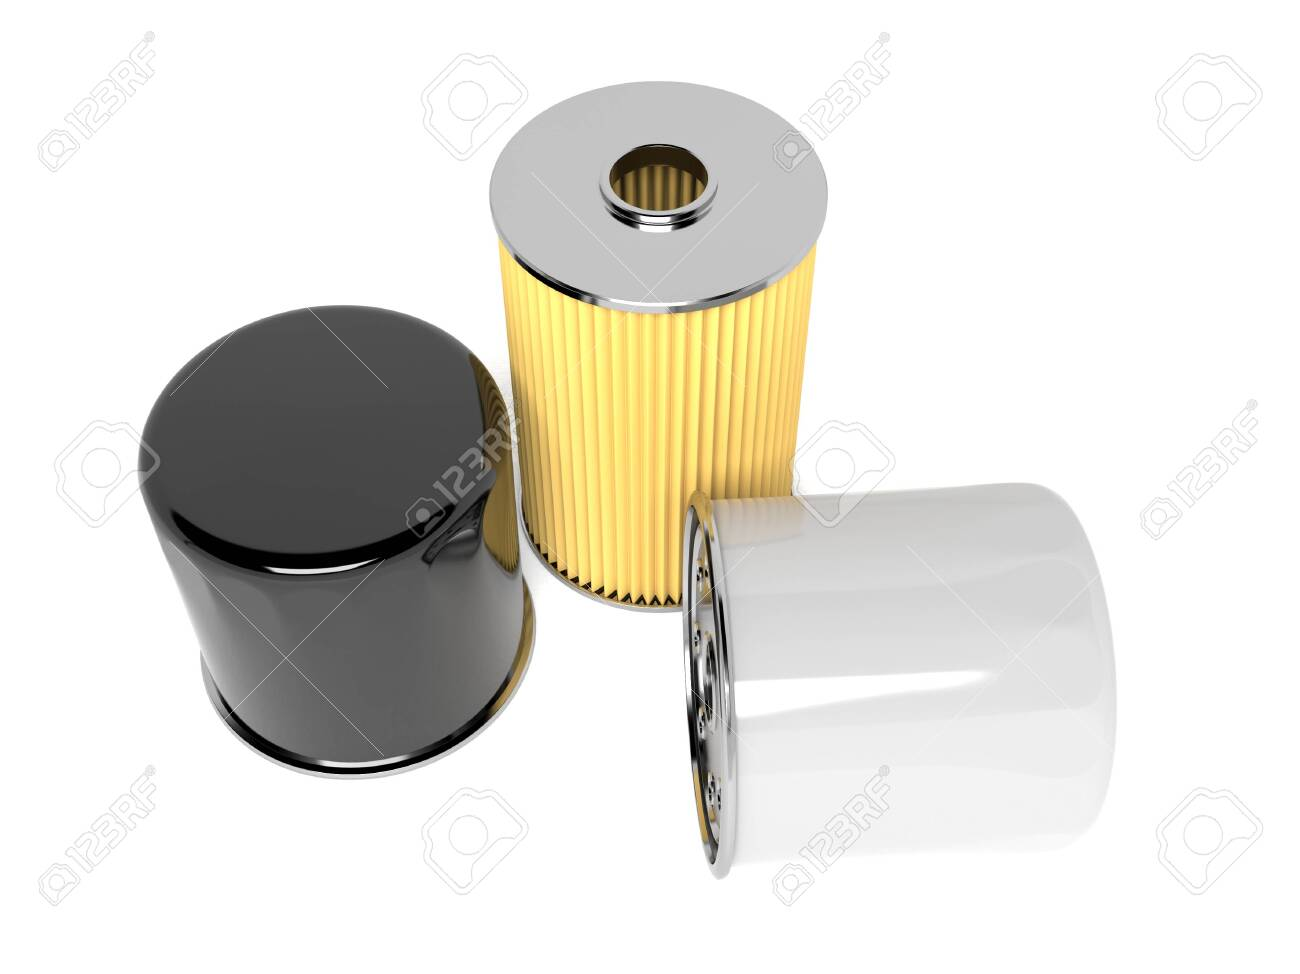 Oil filters. Car spare parts. 3d rendering illustration isolated on white background - 150186541